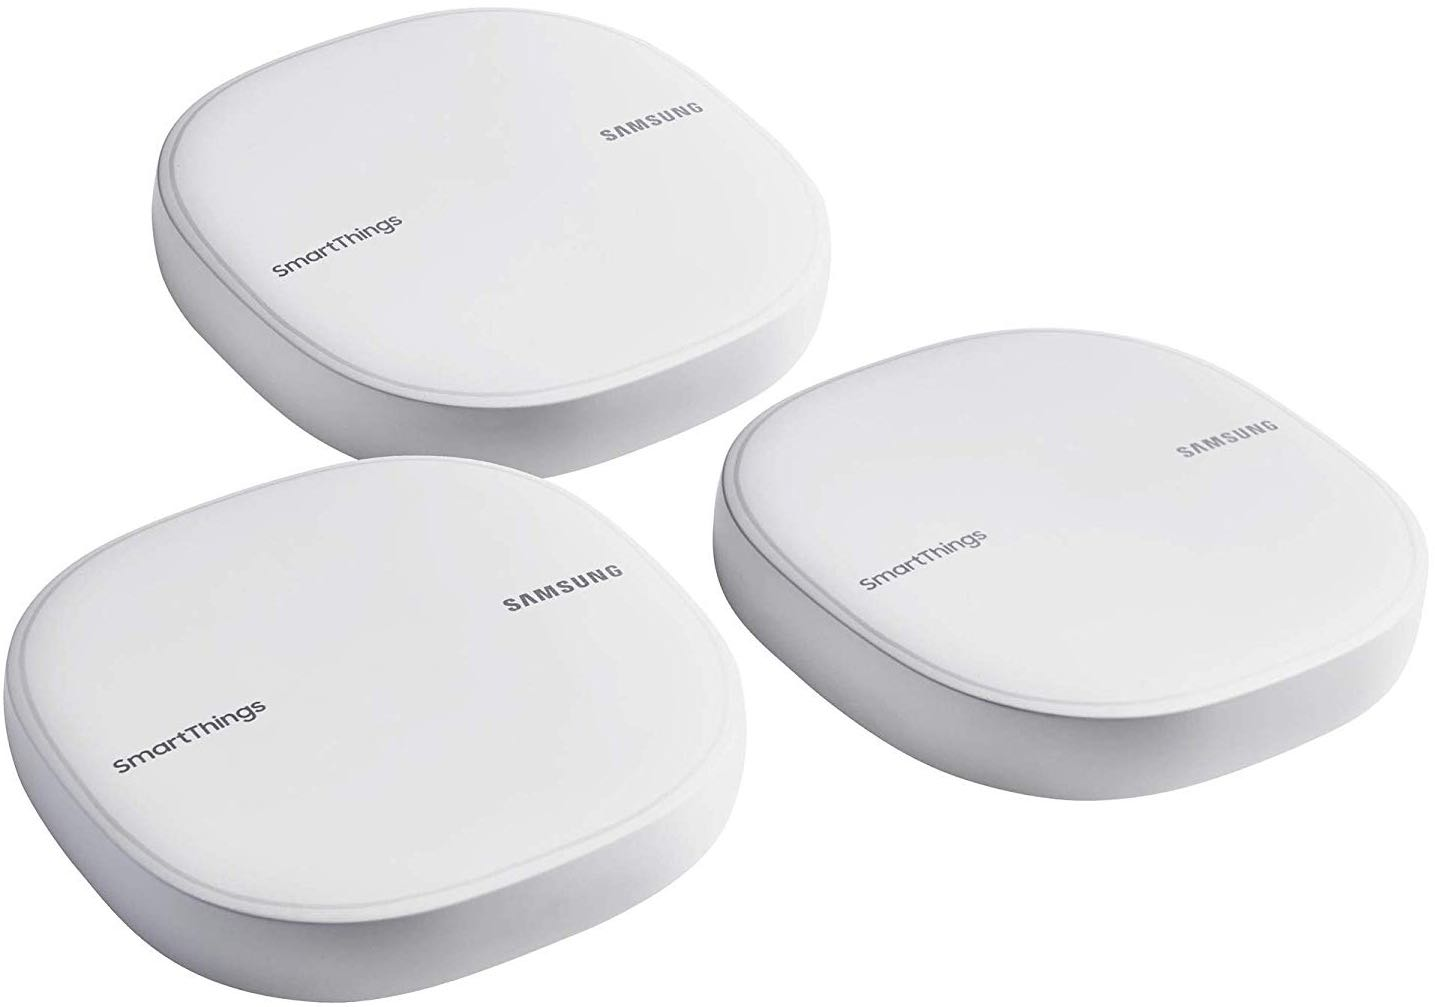 Best Mesh Routers 2019 | Tom's Guide